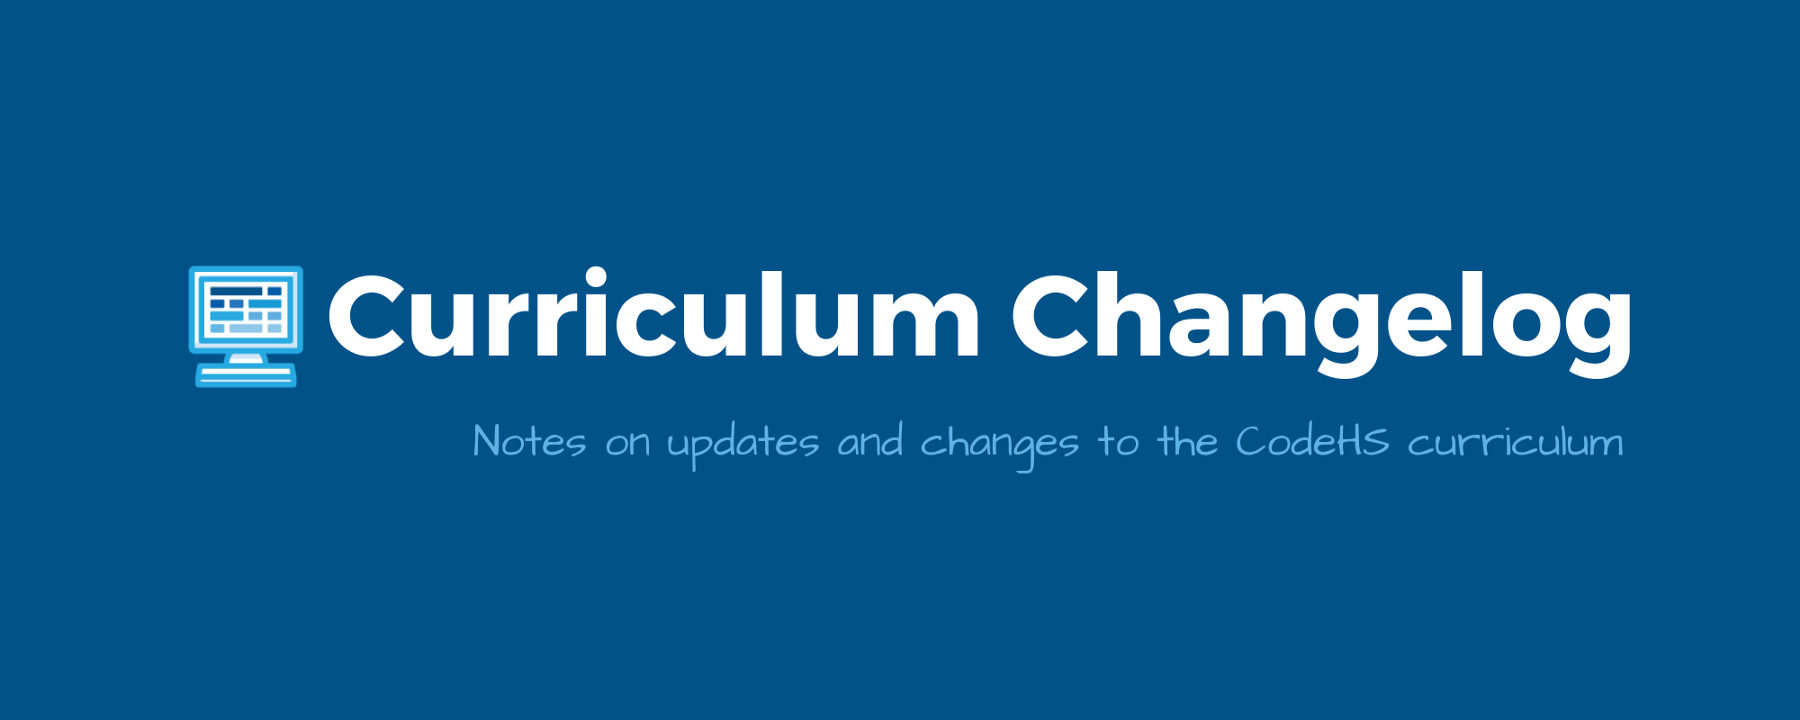 Heading reads curriculum changelog